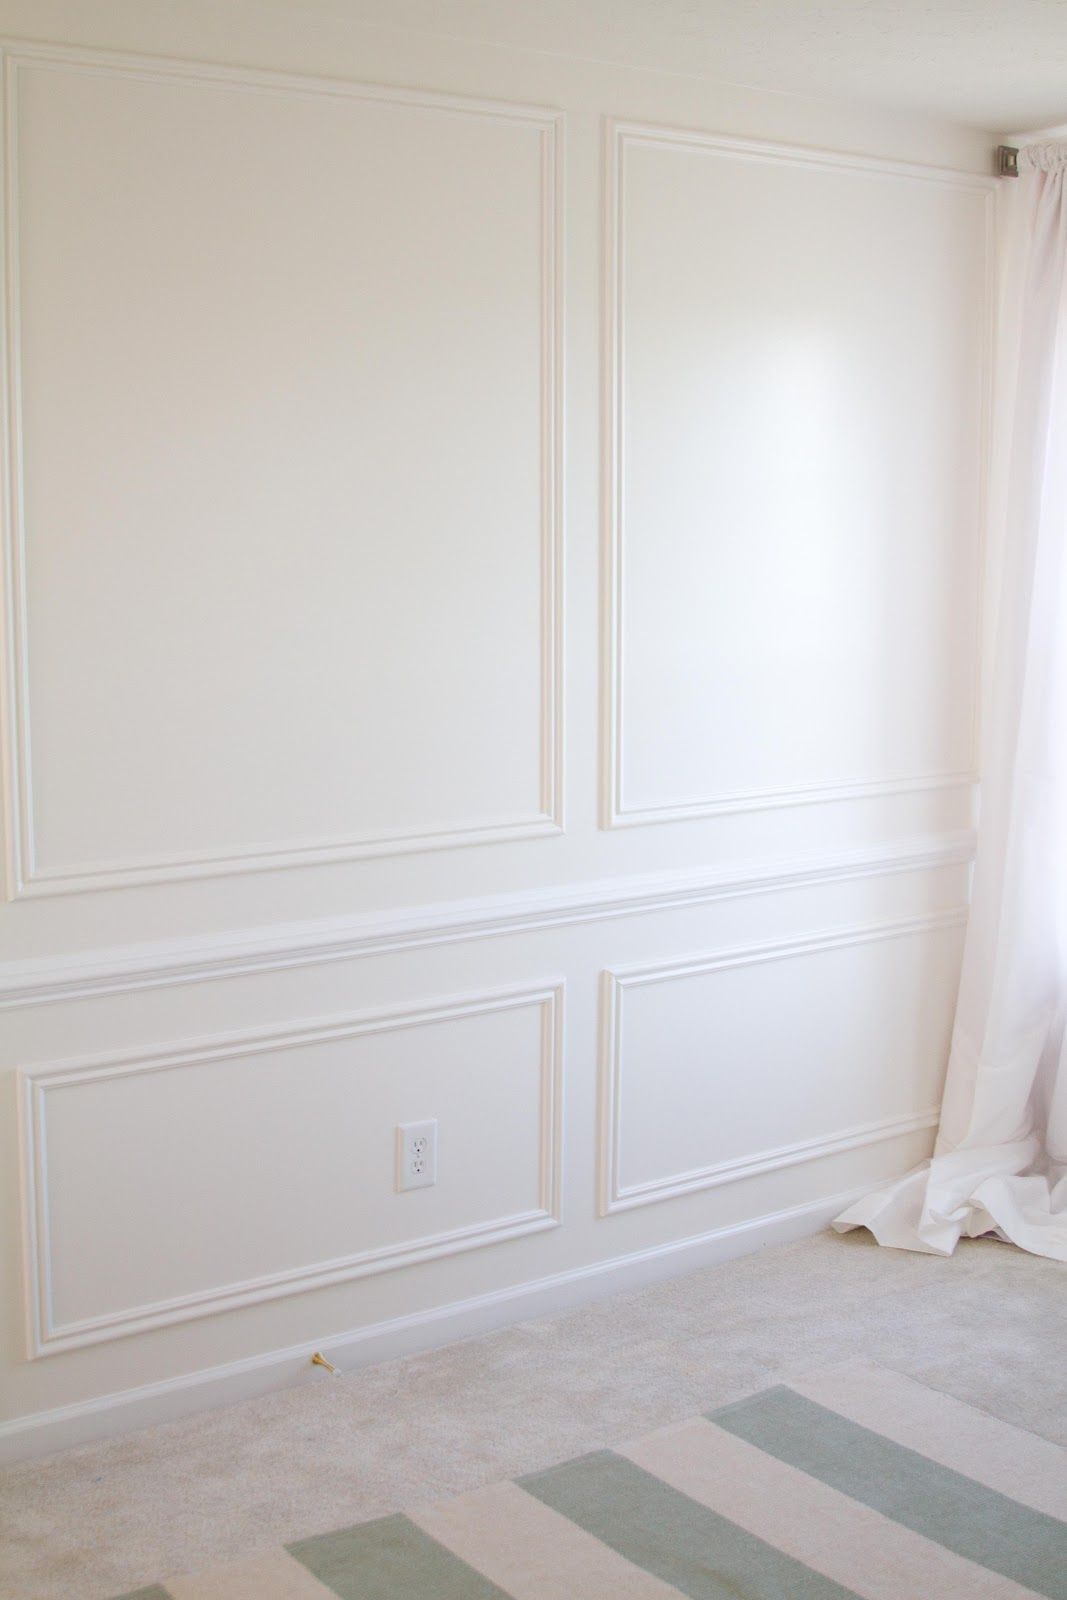 Overmantels, Wainscoting & Windows (Decisions Have Been Made!) | Do ...